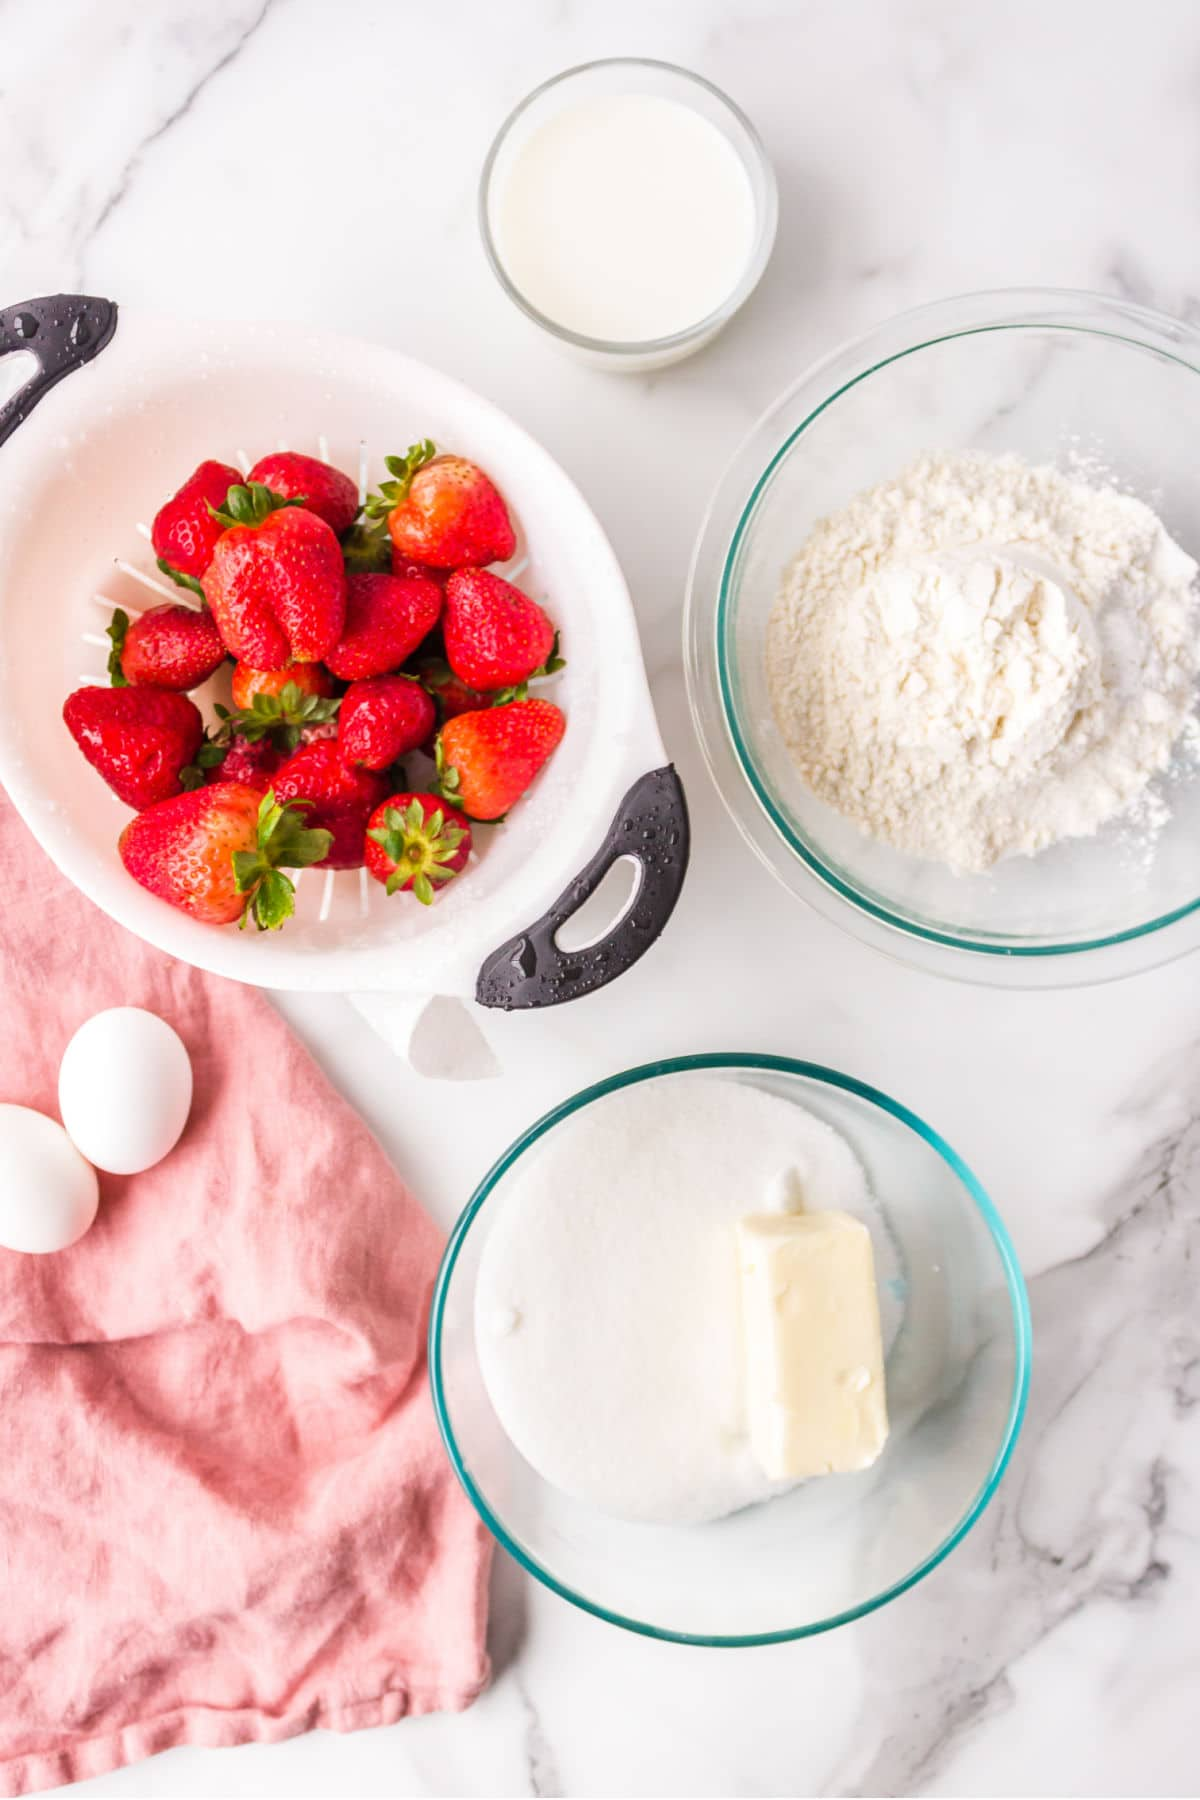 Ingredients for strawberry shortcake bars in bowls.